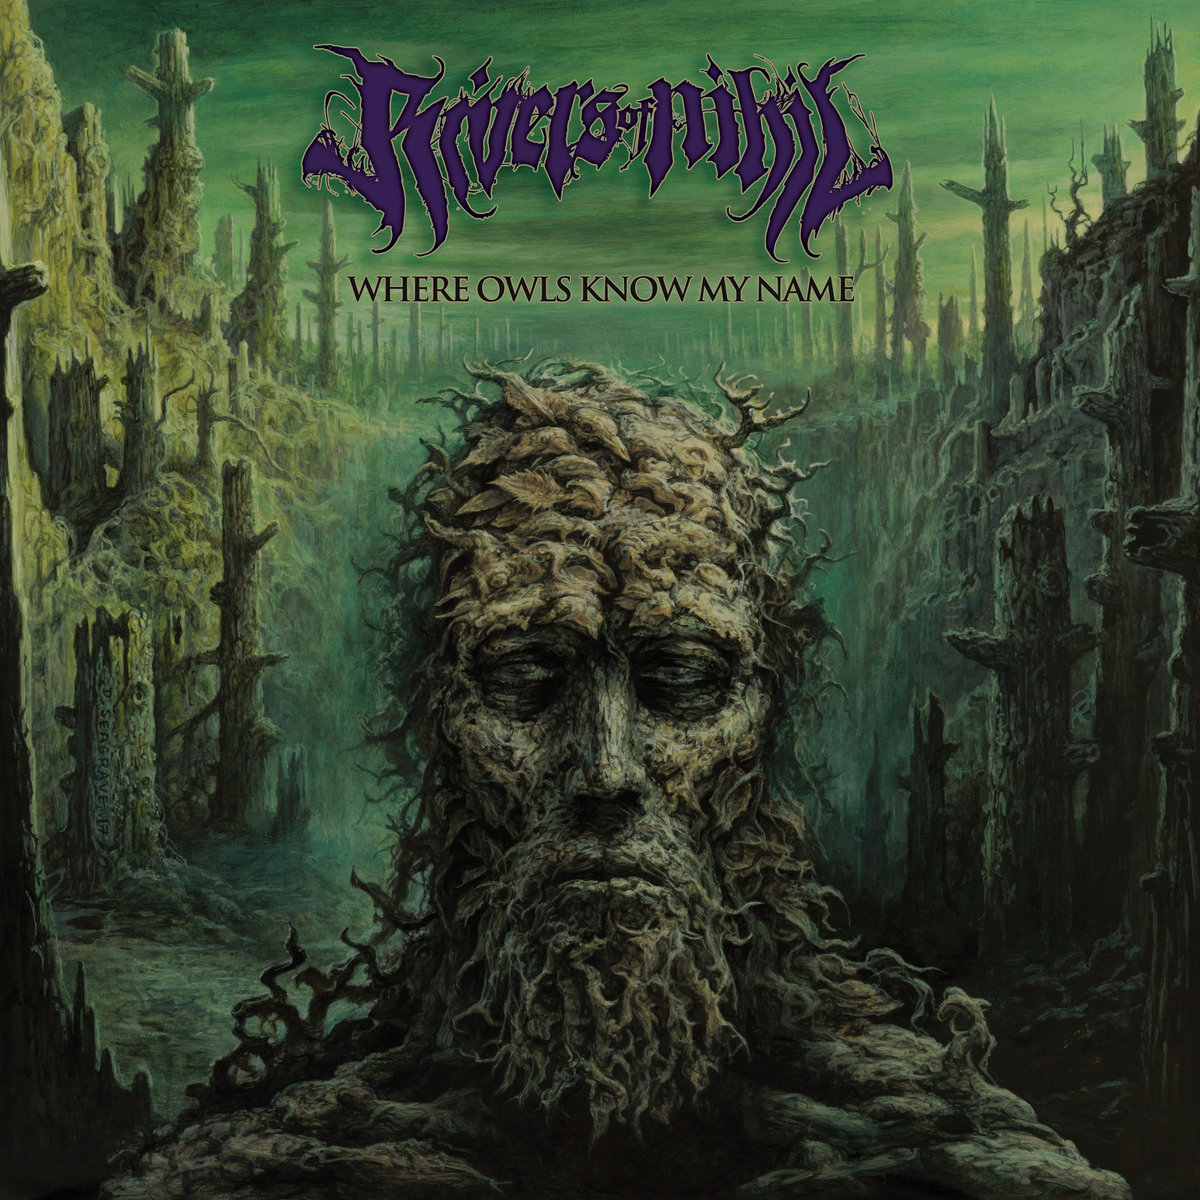 "15. Rivers of Nihil - Where Owls Know Your Name - Taking a slight departure from their previous output, Rivers of Nihil, opt for a more progressive and ""ethereal"" sound that strongly resembles Fallujah's catalog. While this appears to be a point of contention for many, it works, and I don't really think it deters from their original brand of technical death metal. The production on Where Owls Know Your Name is really well-balanced - polished, but not to the point of being overproduced."